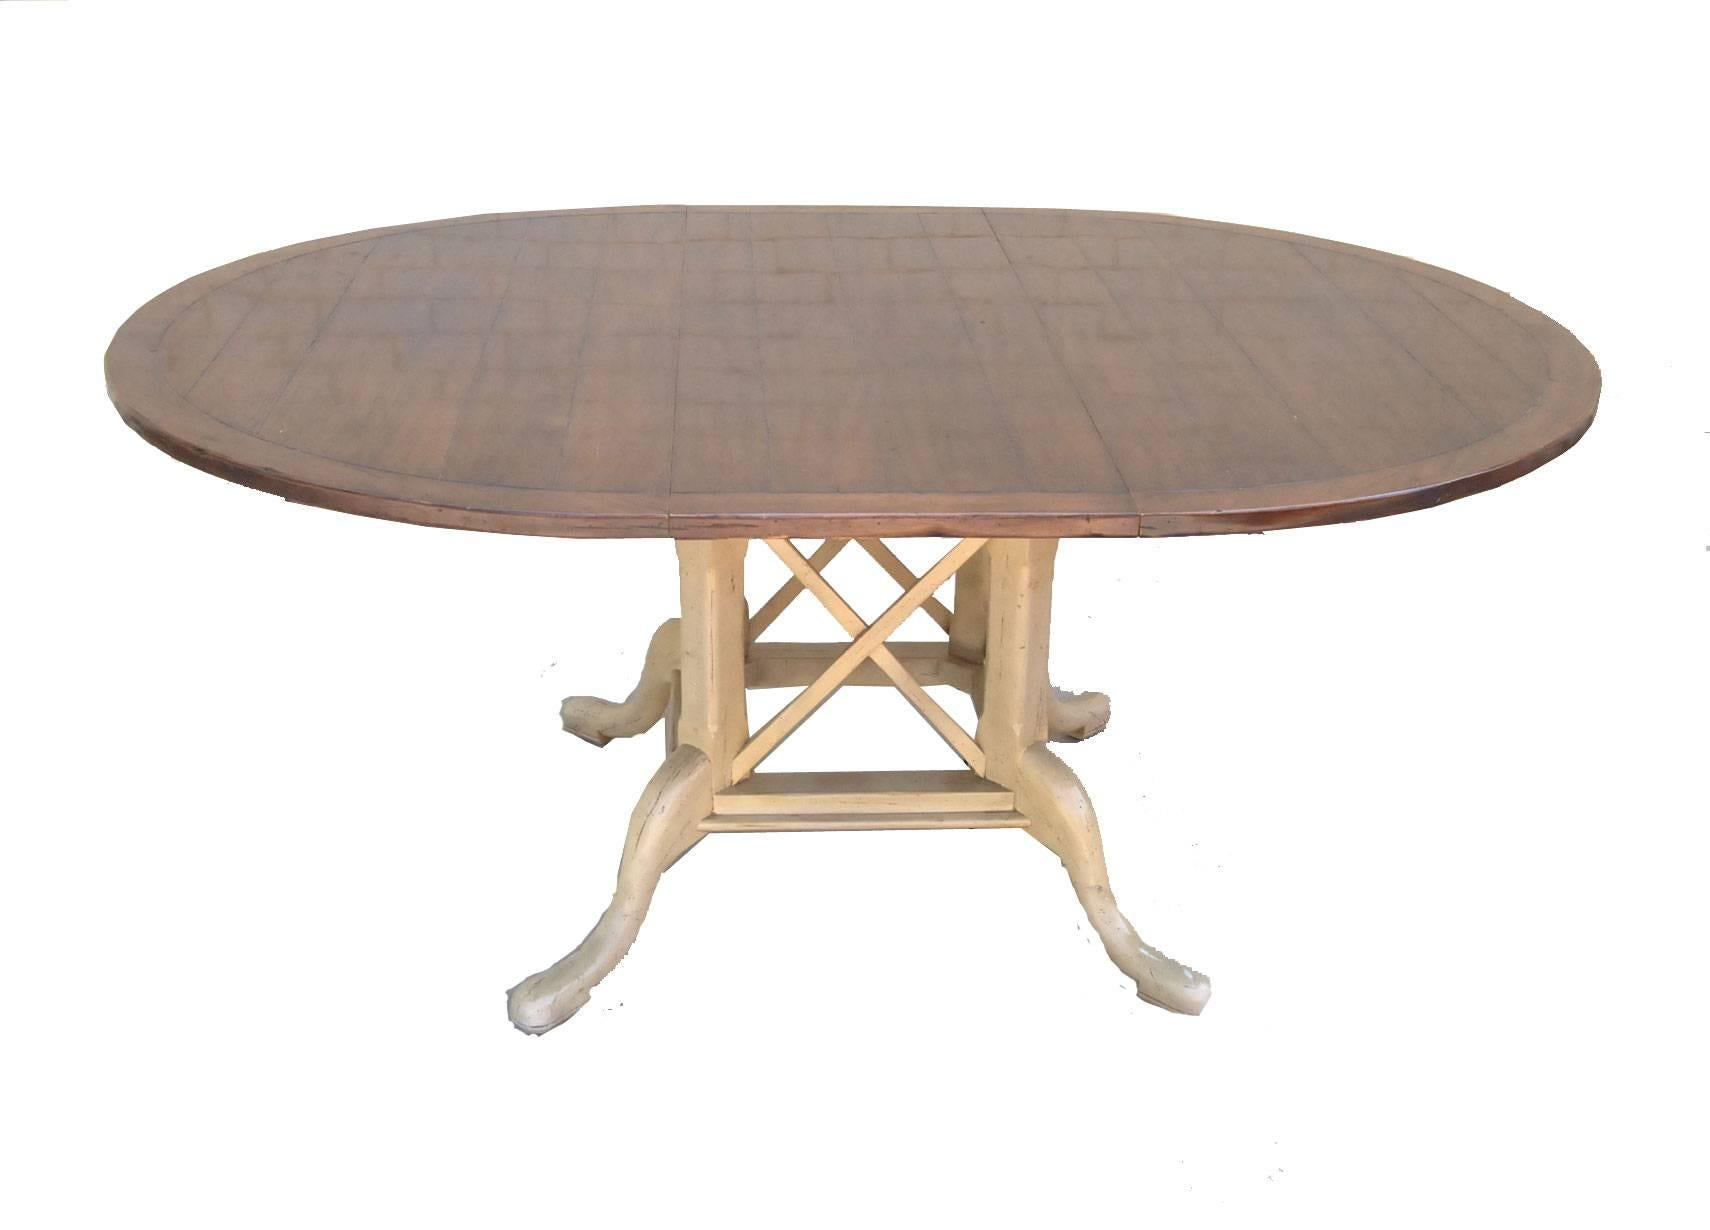 Country French Kettering Round Table And Six Dudley Side Chairs By Guy  Chaddock At 1stdibs